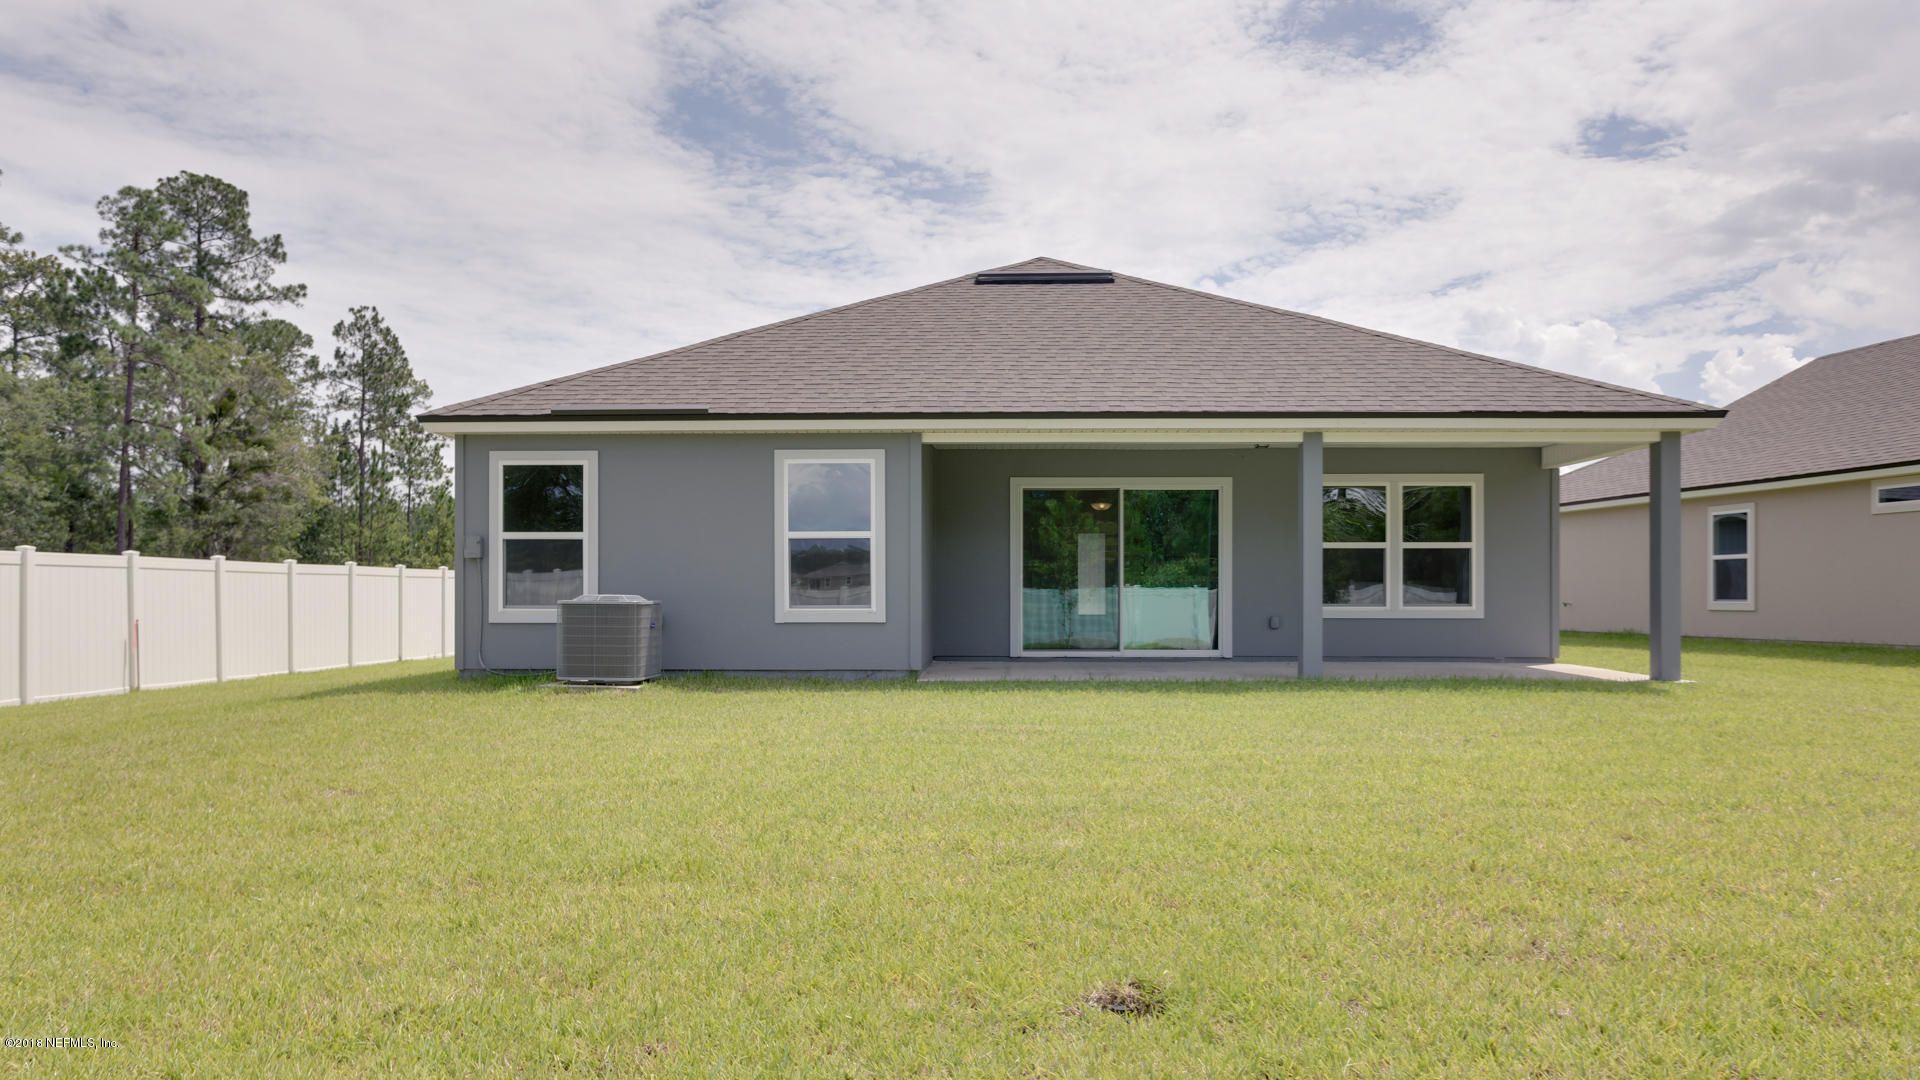 4139 SPRING CREEK, MIDDLEBURG, FLORIDA 32068, 3 Bedrooms Bedrooms, ,2 BathroomsBathrooms,Residential - single family,For sale,SPRING CREEK,911853